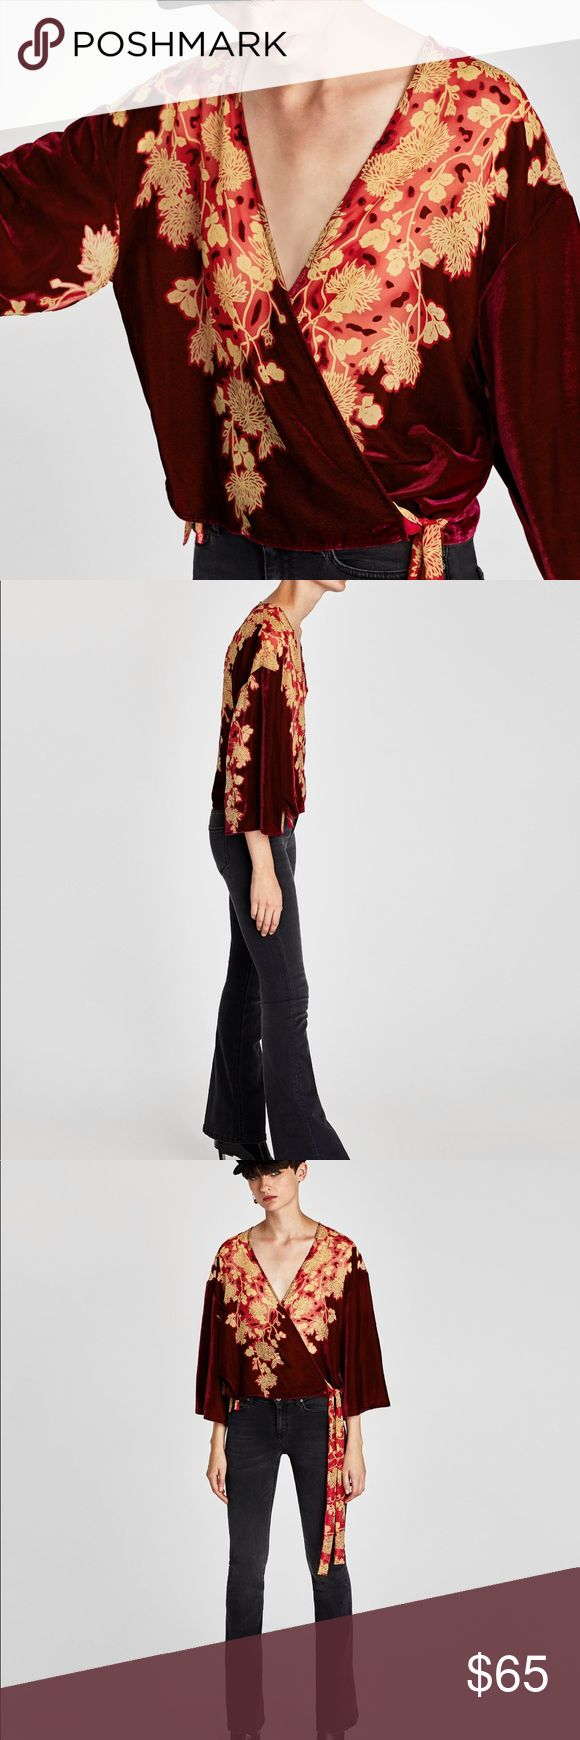 Zara printed Kimono with velvet trims in wine Zara printed Kimono with velvet grins in deep burgundy wine color. Floral motif printed chiffon ties on the side. Wrap top Kimono that will work with denim or dress it up with a skirt for a night out.  Zara  Wrap Kimono  Velvet  Color Red/ burgundy/ wine Zara Tops